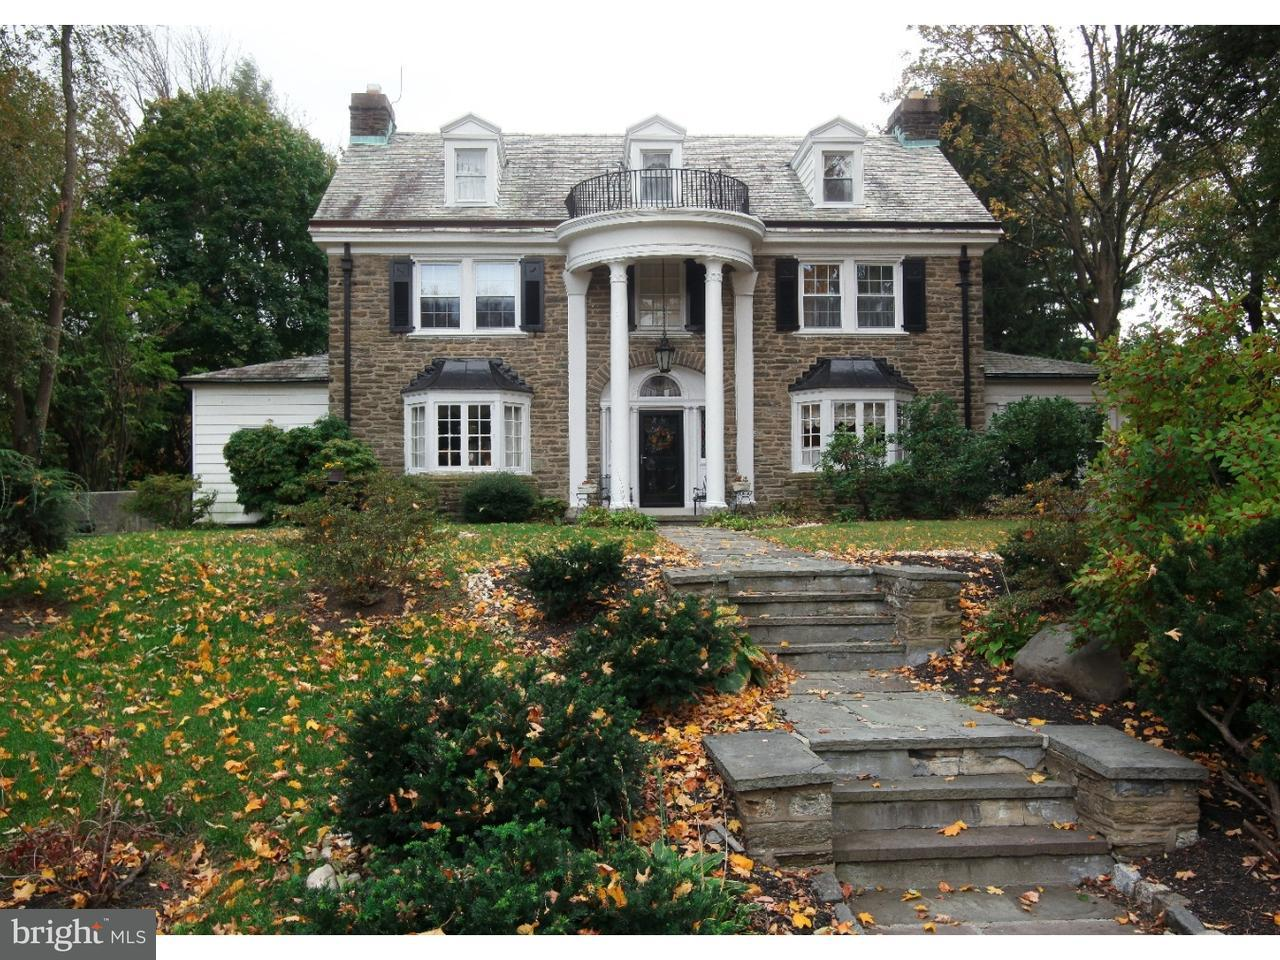 Single Family Home for Sale at 34 LATHAM PARK Elkins Park, Pennsylvania 19027 United States